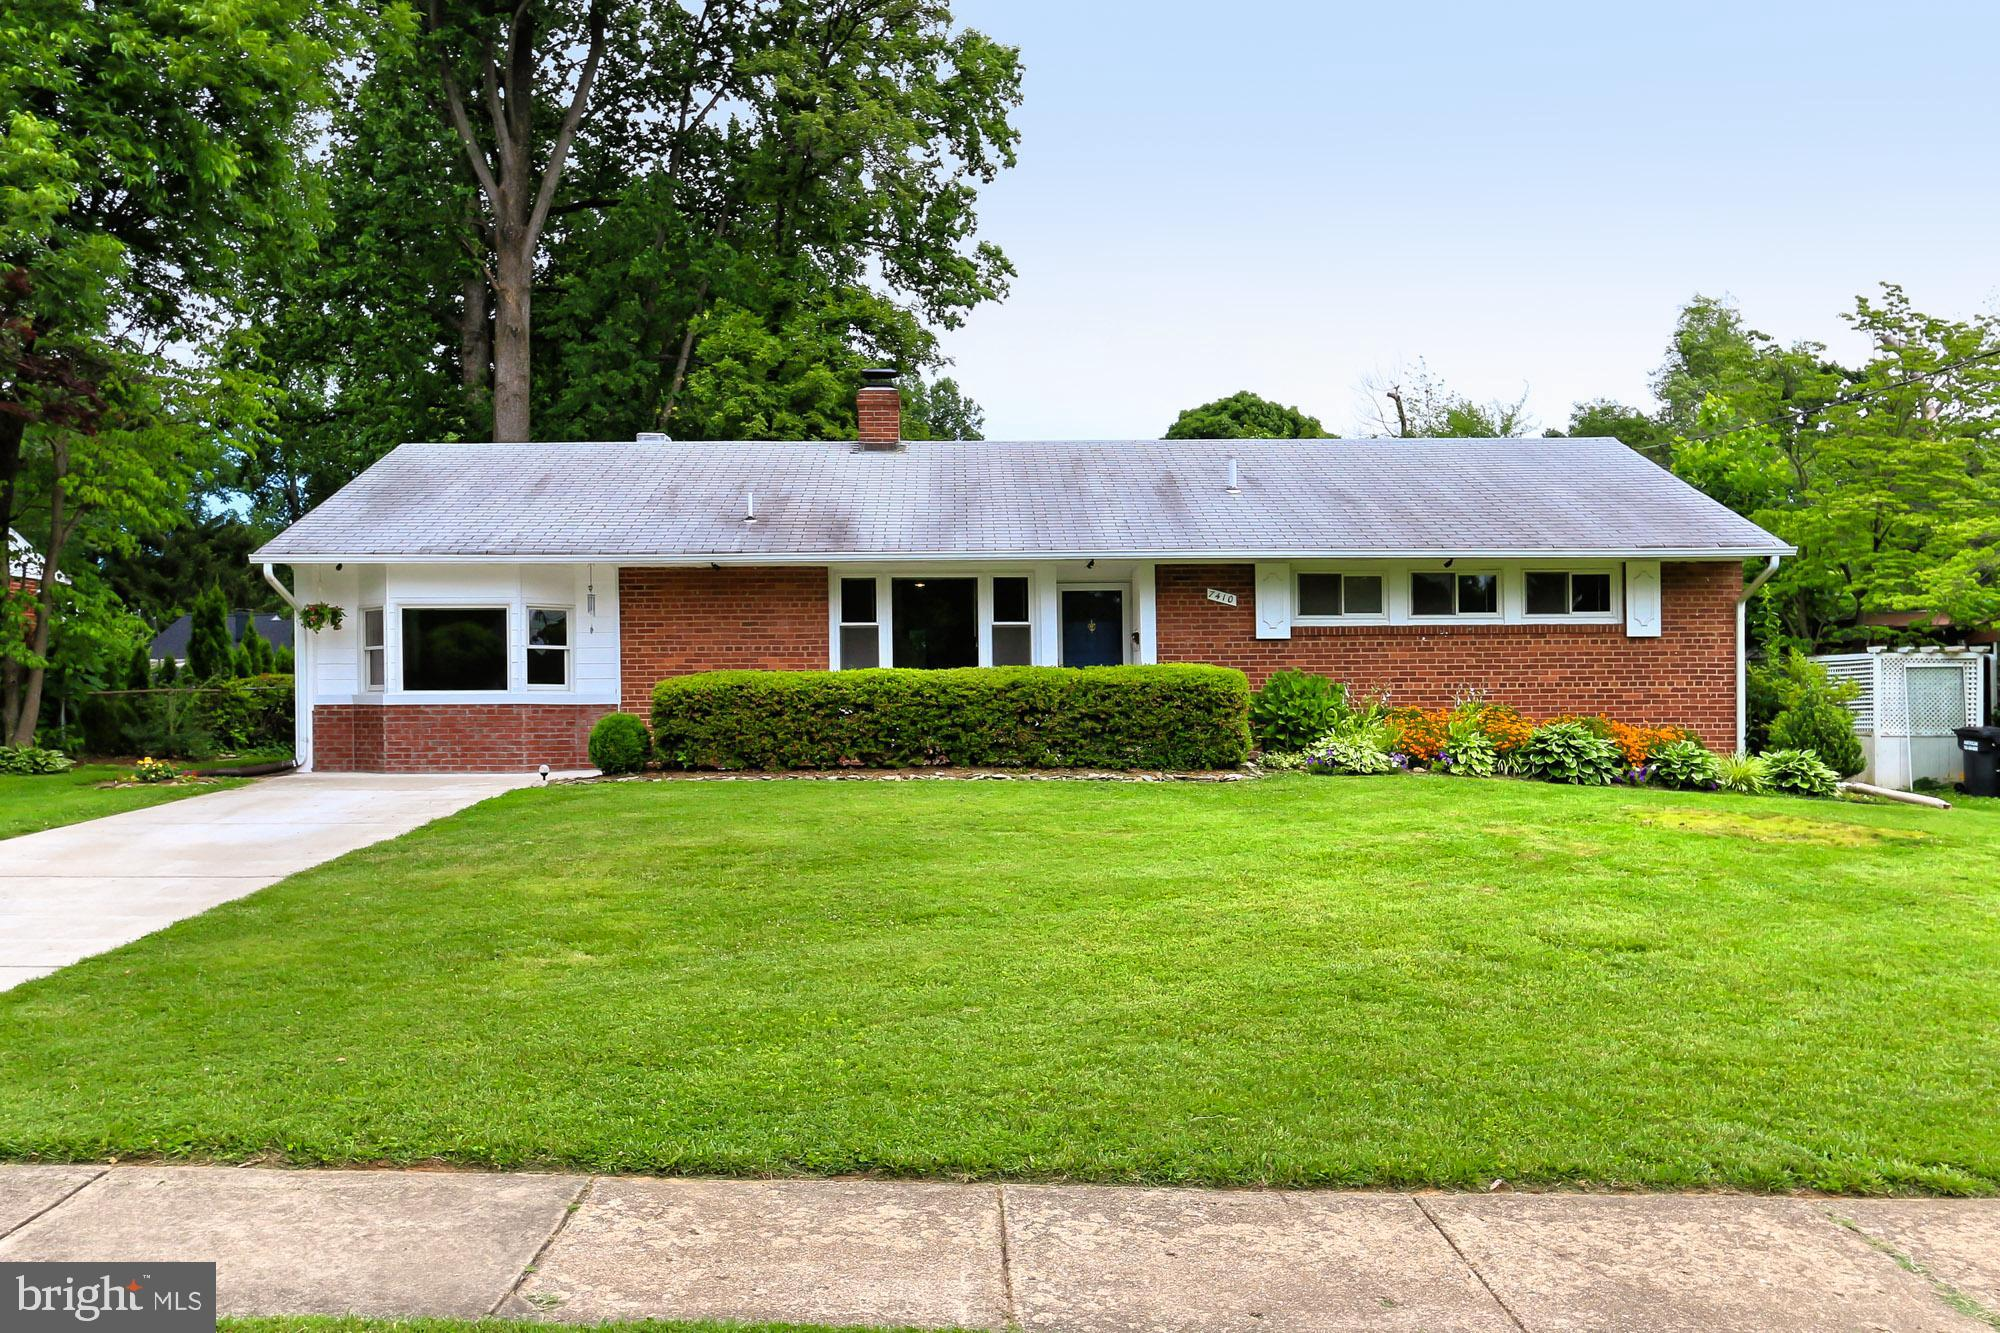 Updated and expanded rambler in sought after community! This move-in ready home has 3 bedrooms, 2 bathrooms, a large family room addition and an expansive yard! As you enter the home, hardwood floors welcome you through the main living area. The kitchen has been updated with modern touches, stainless steel appliances and granite countertops. Off of the kitchen is a large den...perfect for an office, playroom or guest space. As you pass through the generous sized dining room area, you enter your enormous family room addition with cathedral ceilings, surrounded by new windows for tons of natural light. There are 3 spacious bedrooms and 2 gorgeously updated bathrooms. The entire house has been freshly painted and features tons of recessed lighting. Updated laundry room with newer HVAC unit and lots of storage!The patio off of the family room is perfect for entertaining on those relaxing sunny afternoons. The flat backyard is ideal for summertime fun on the playset and gardening. You'll find plenty of storage room in the double decker shed! Location!  Situated in a great neighborhood and close to major commuting routes, the VRE, Metro Bus w/ express service to the Pentagon and Express Lanes. Easy neighborhood access to Lake Accotink Park, Fairfax County Cross Country Trail and connector to Wakefield park trails. Minutes to great retail, restaurants and Audrey Moore Rec Center!